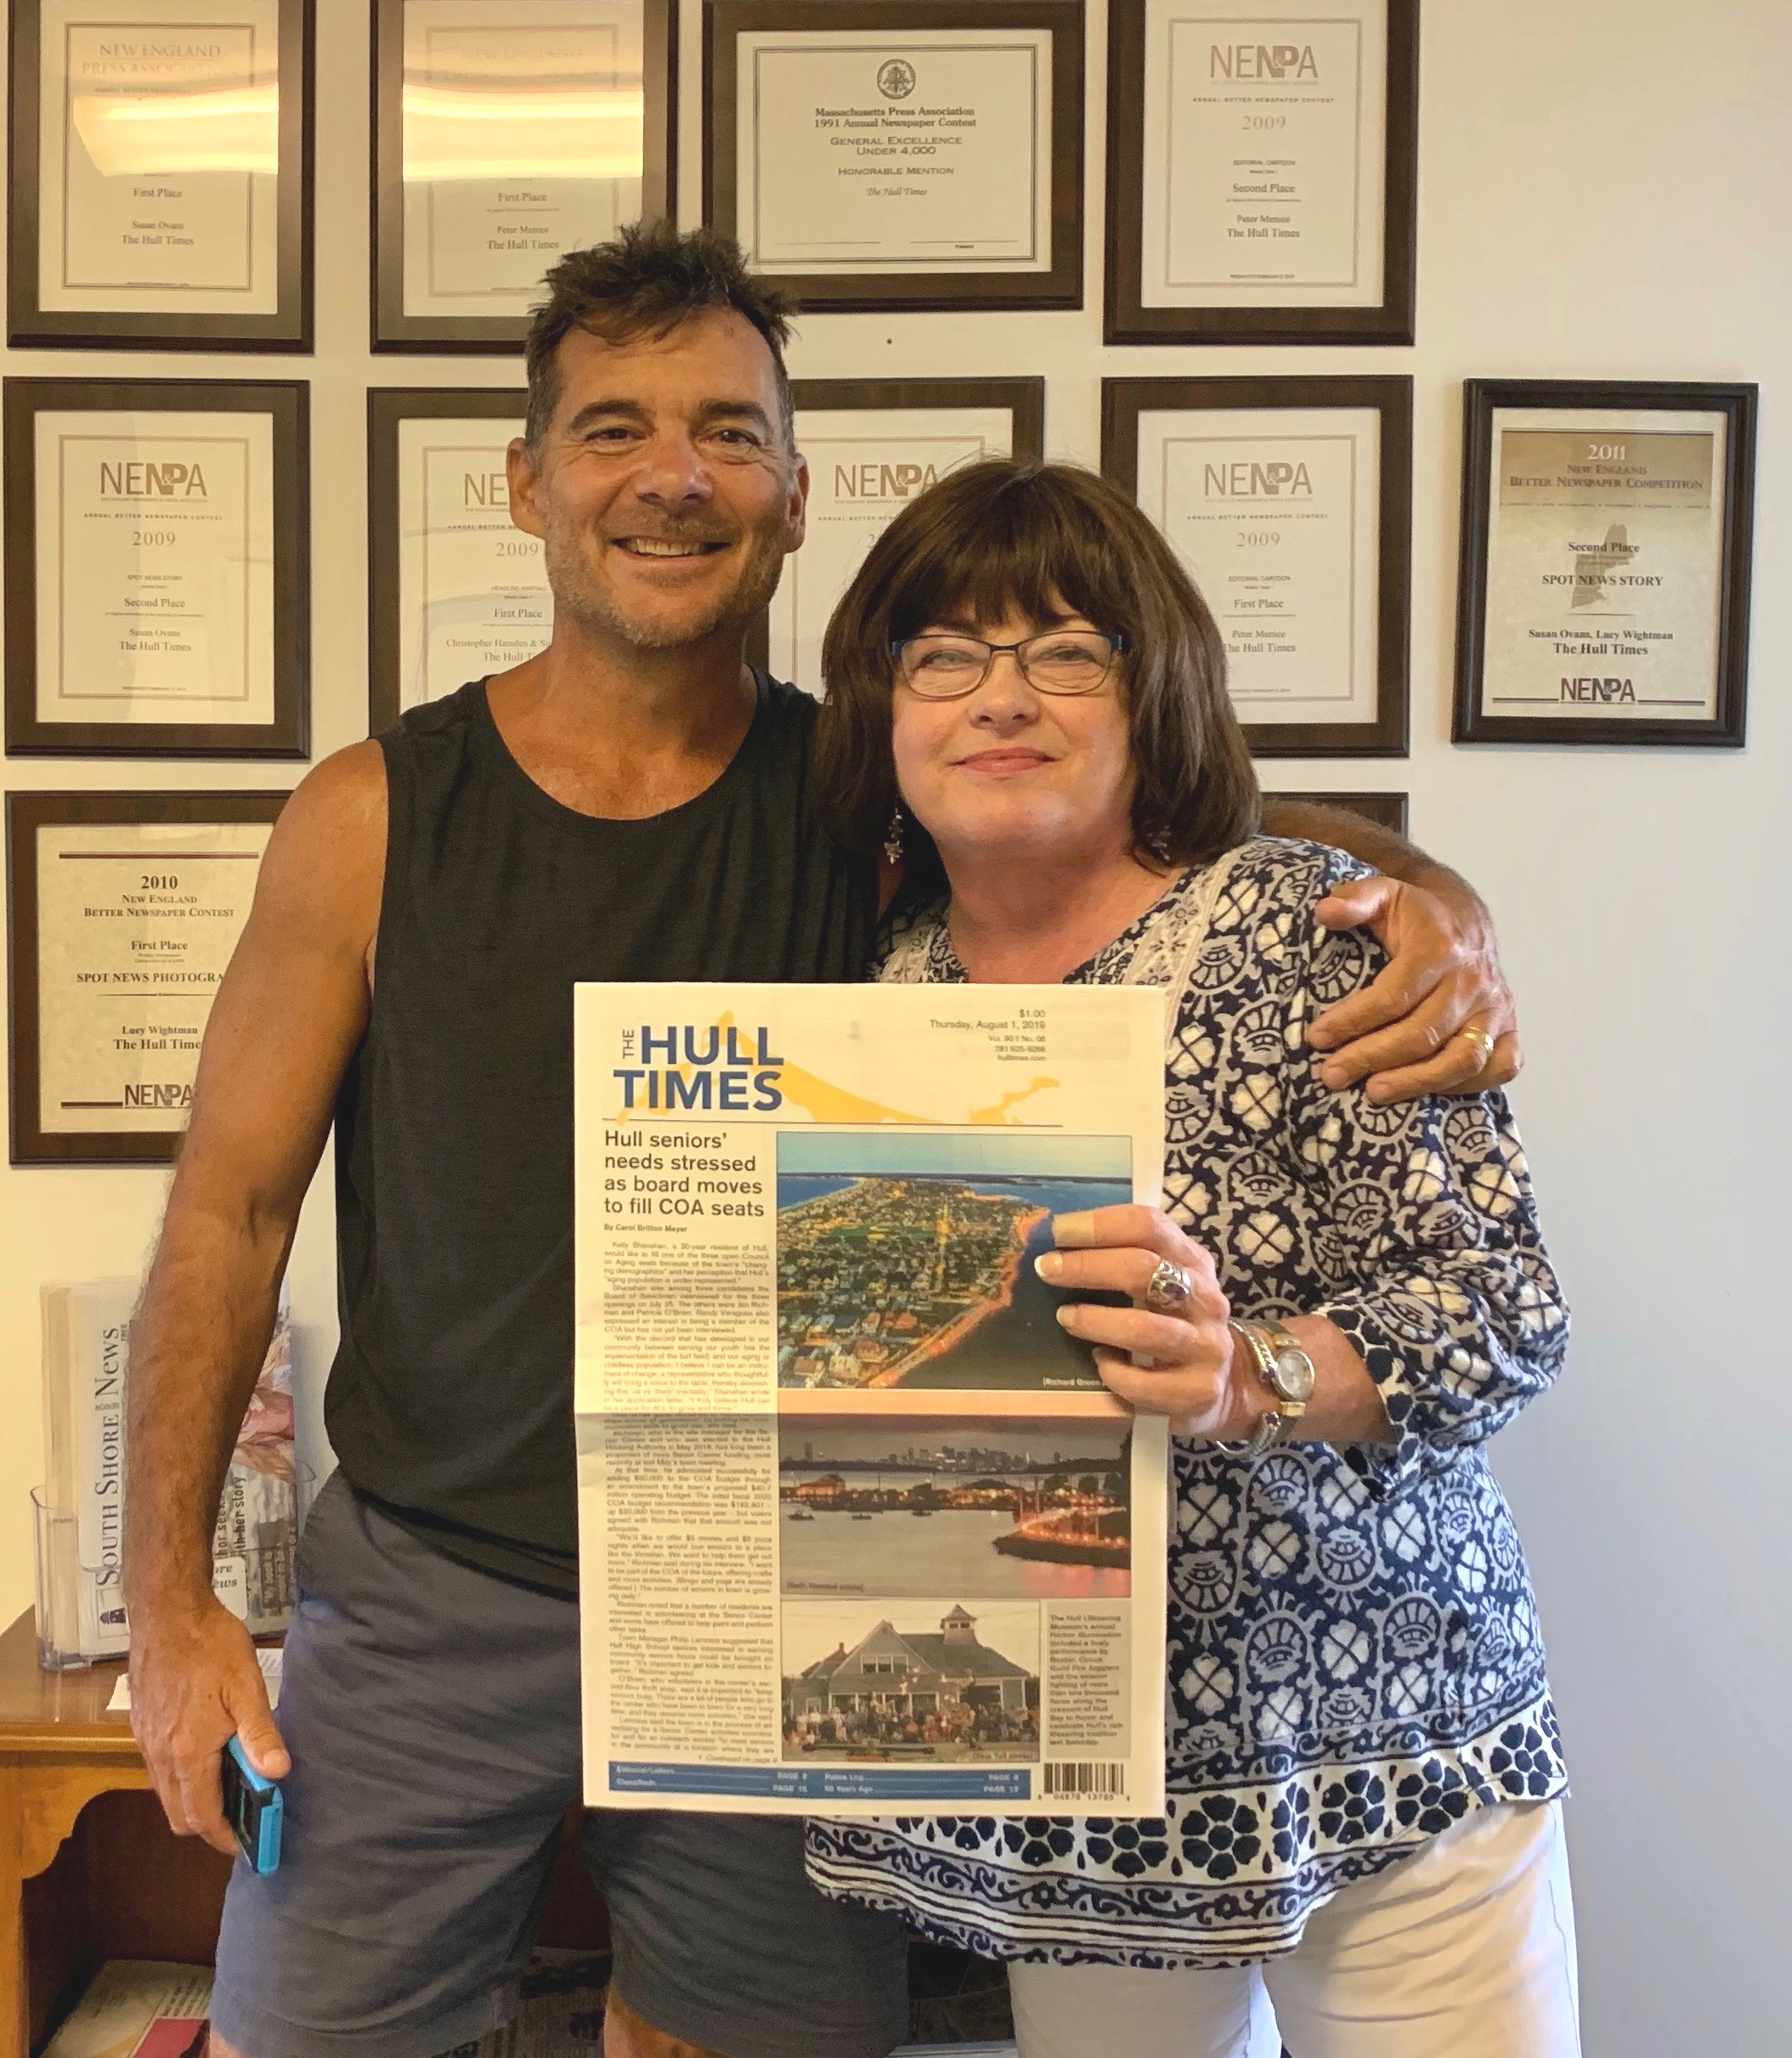 - The Hull Times' award-winning cartoonist, Peter Menice, with publisher Patricia Abbate at the publication's offices located on Nantasket Ave., Hull, MA.